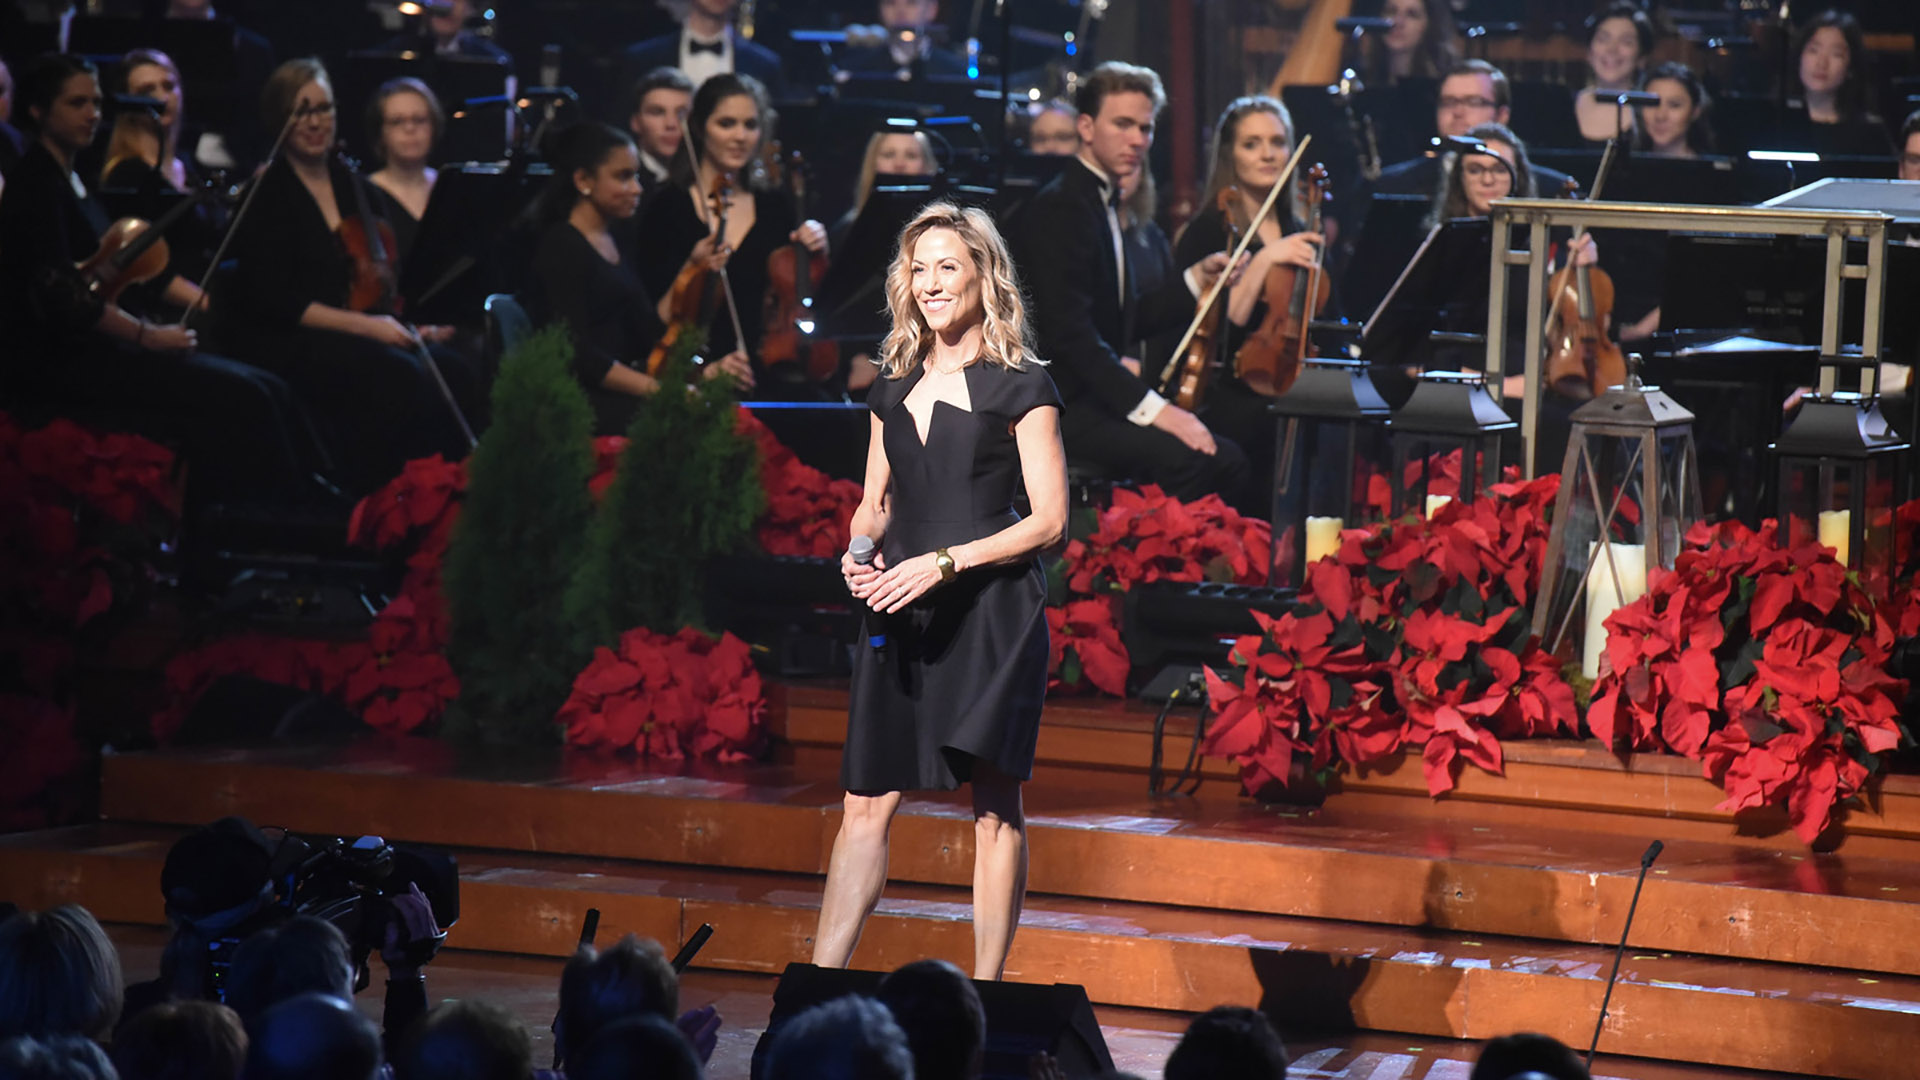 Christmas At Belmont 2020 Pbs Christmas at Belmont | PBS Programs | PBS